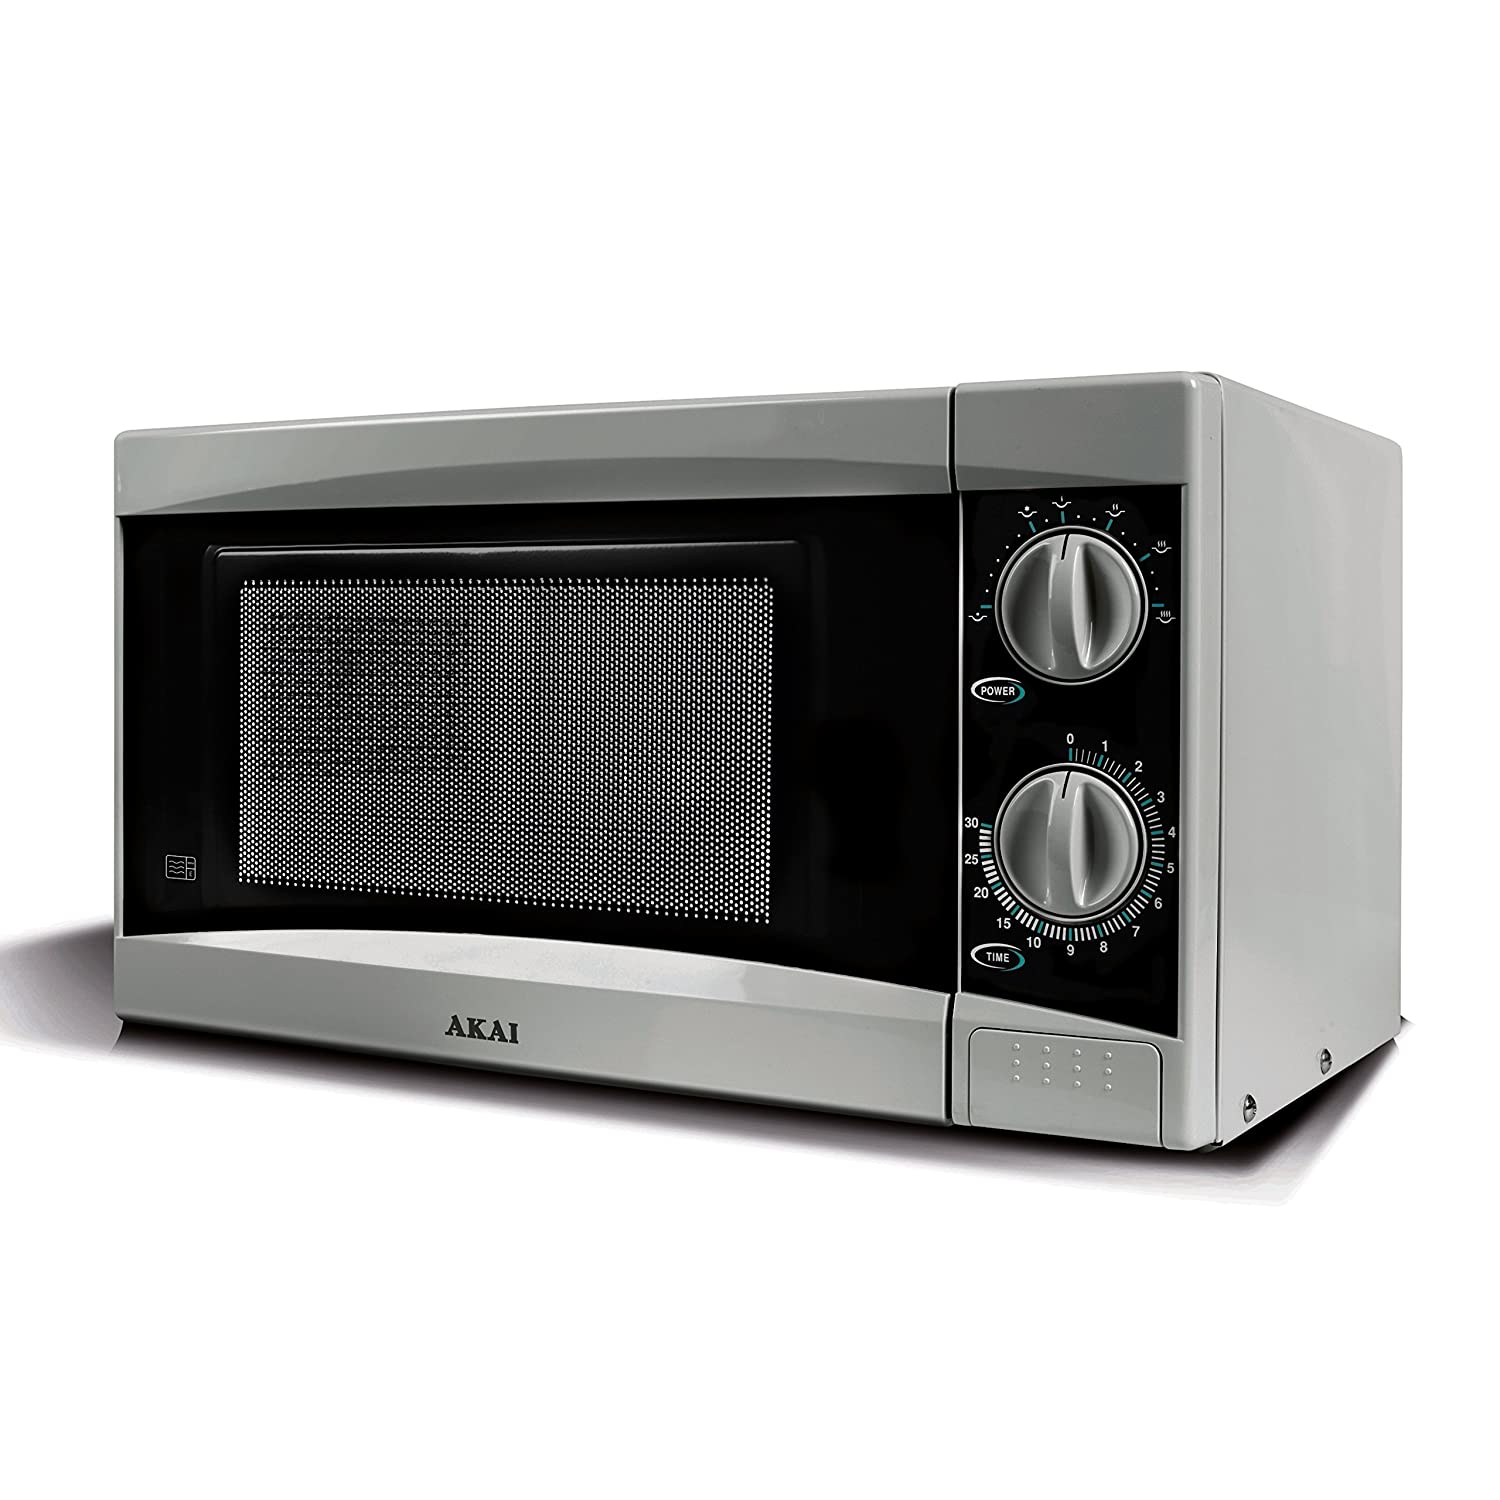 Akai A24001B Manual Solo Microwave with 6 Power Levels, 800 W, 20 Litre, Black